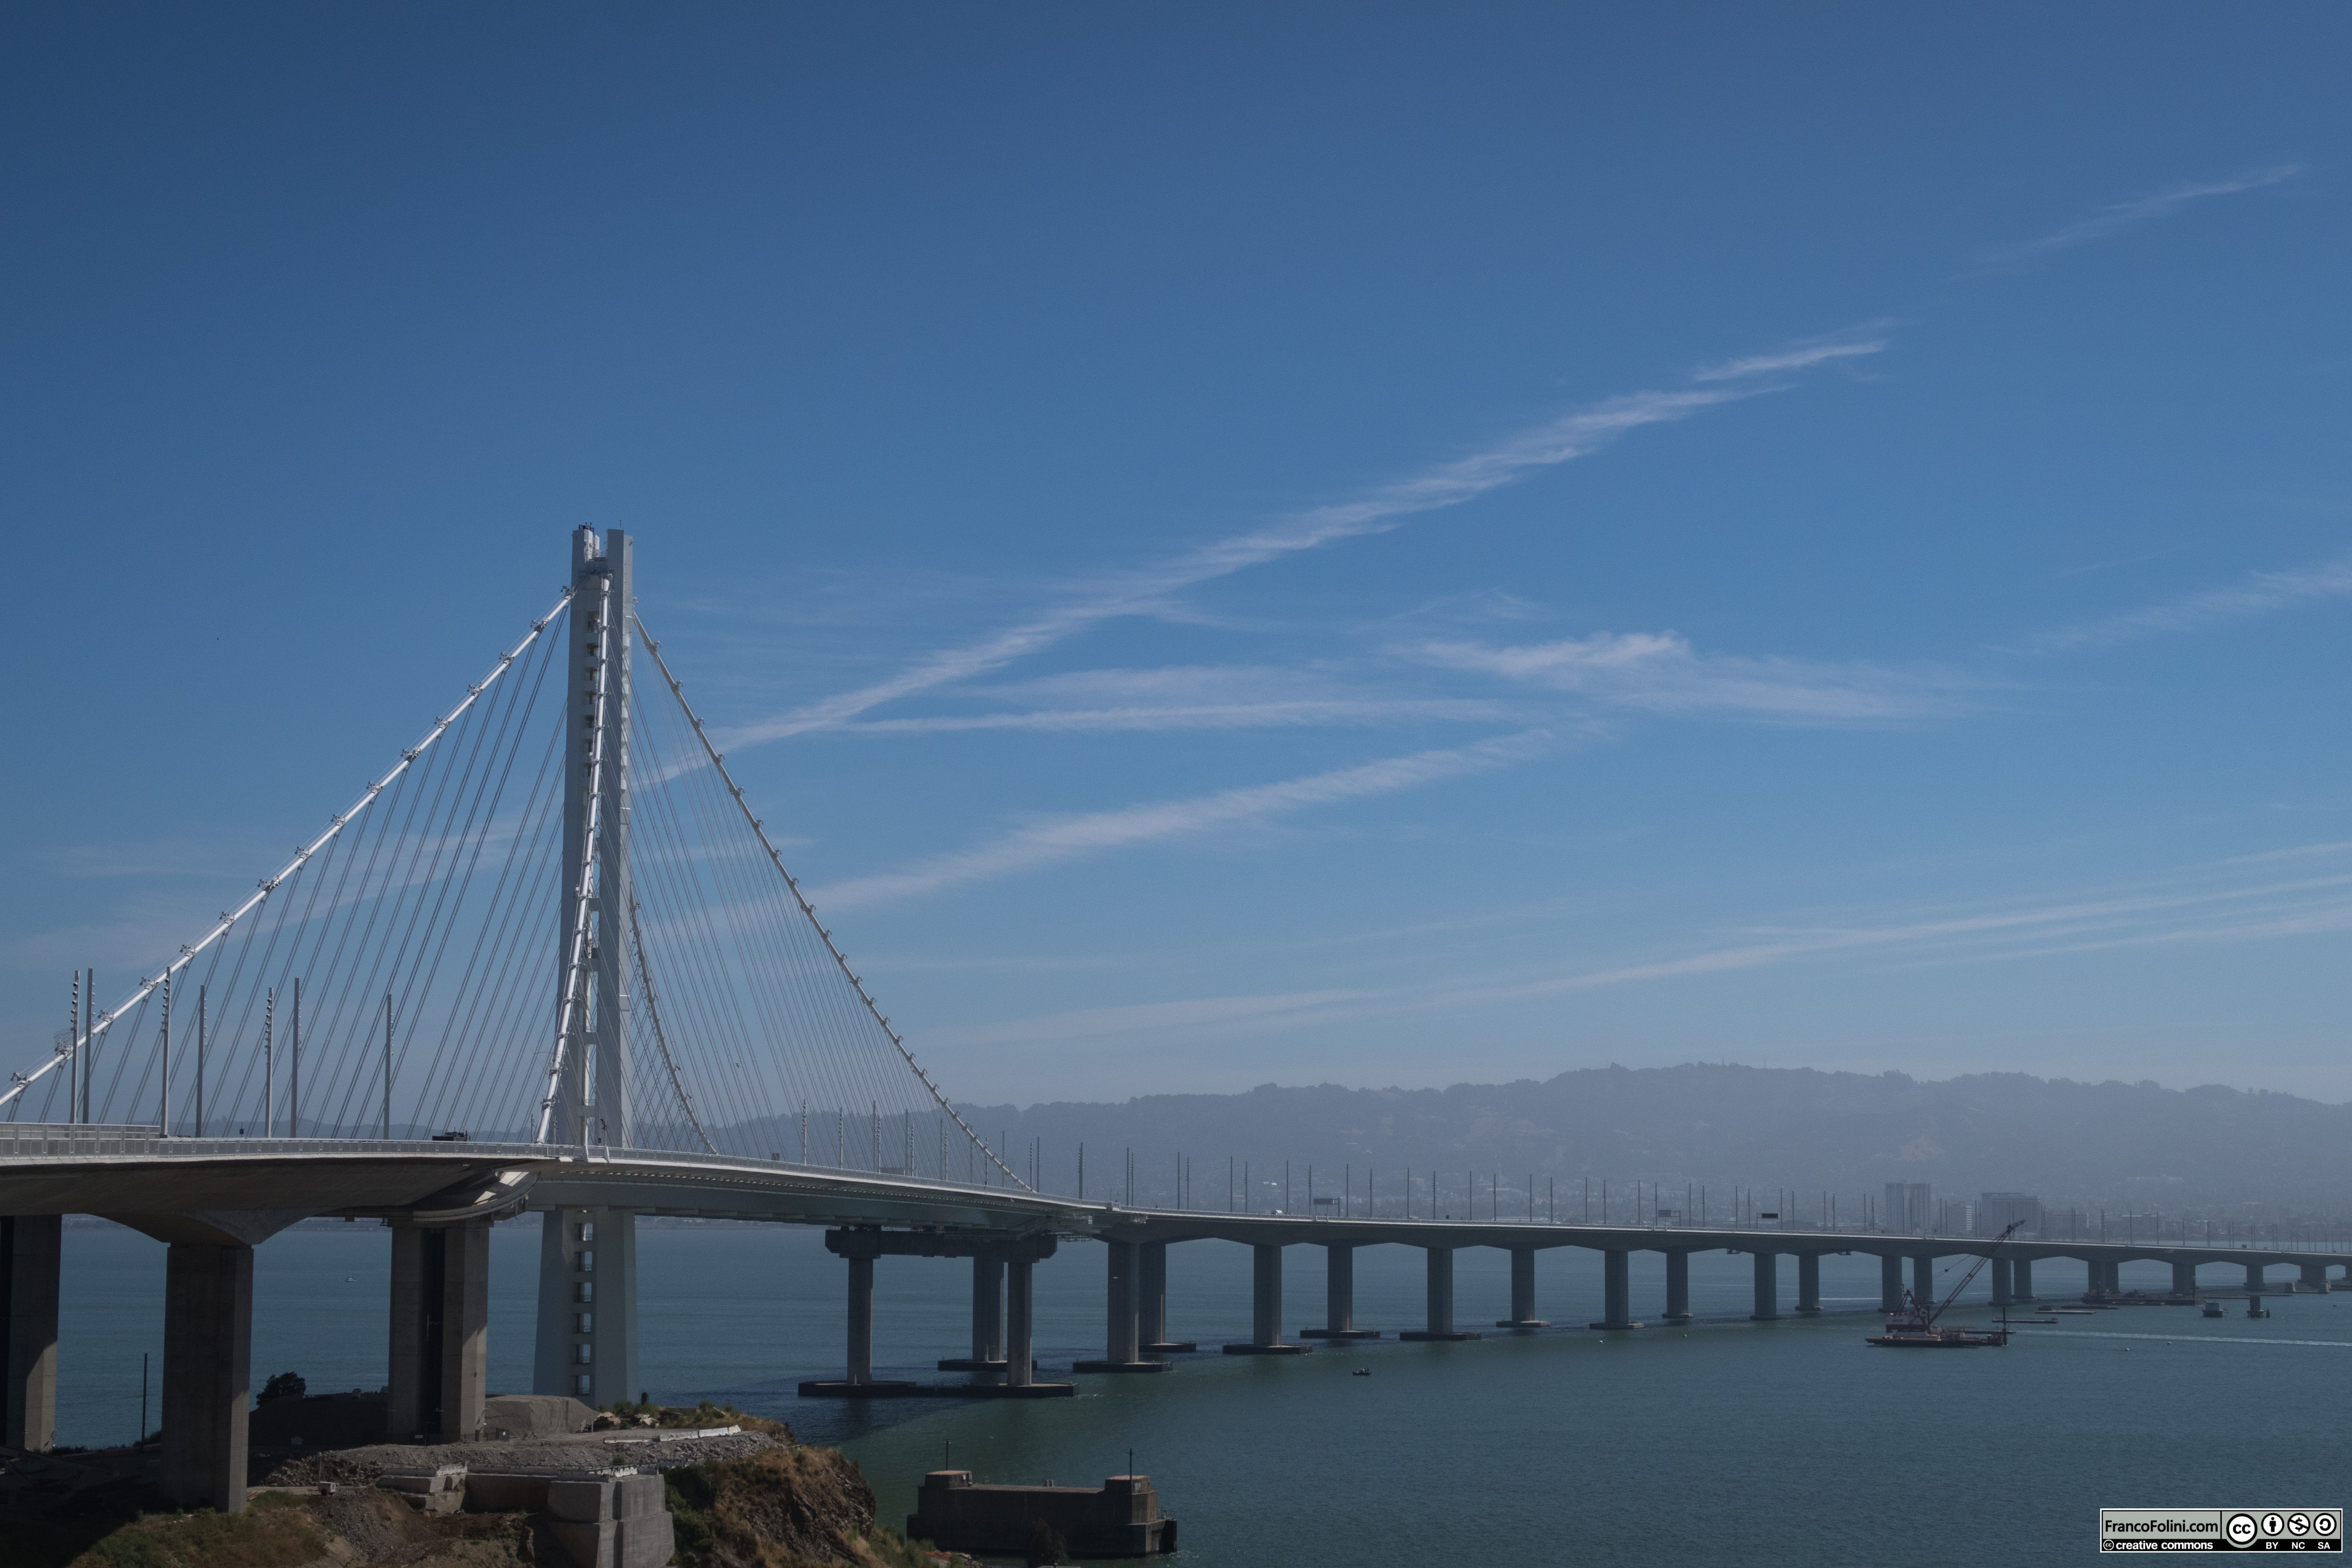 Il tratto del Bay Bridge tra Treasure Island e Oakland visto da Treasure Island